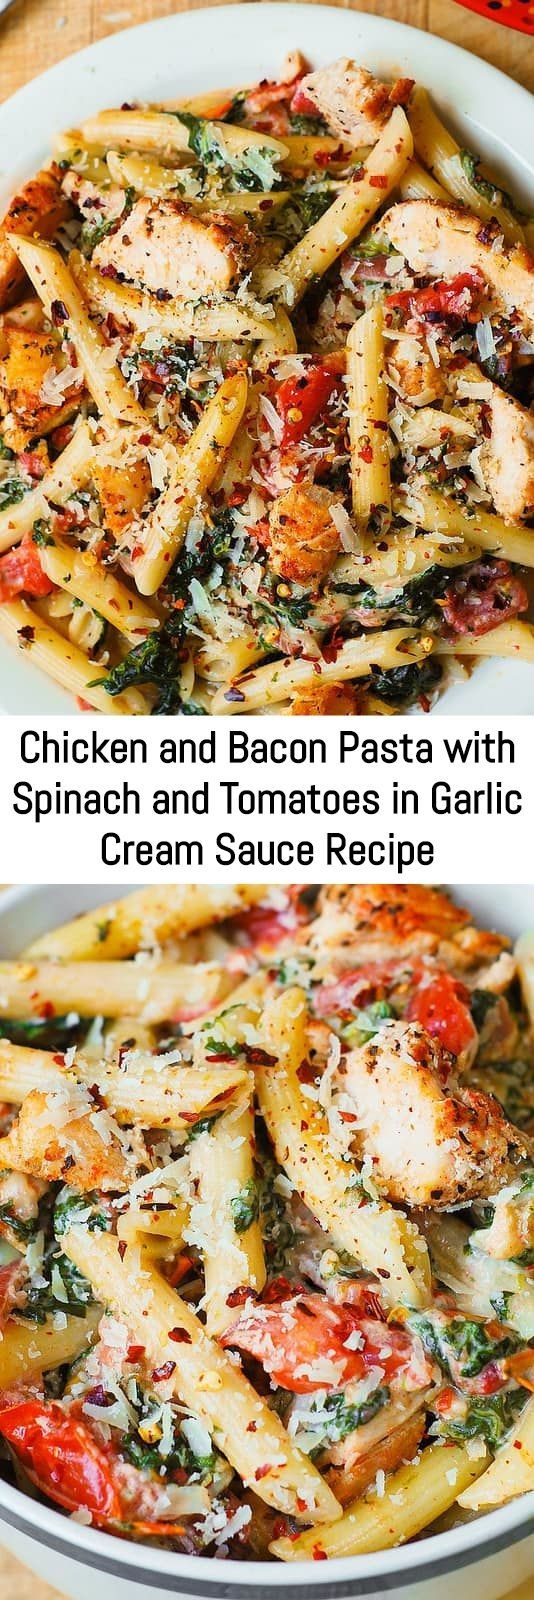 Chicken And Bacon Pasta With Spinach And Tomatoes In Garlic Cream Sauce Recipe